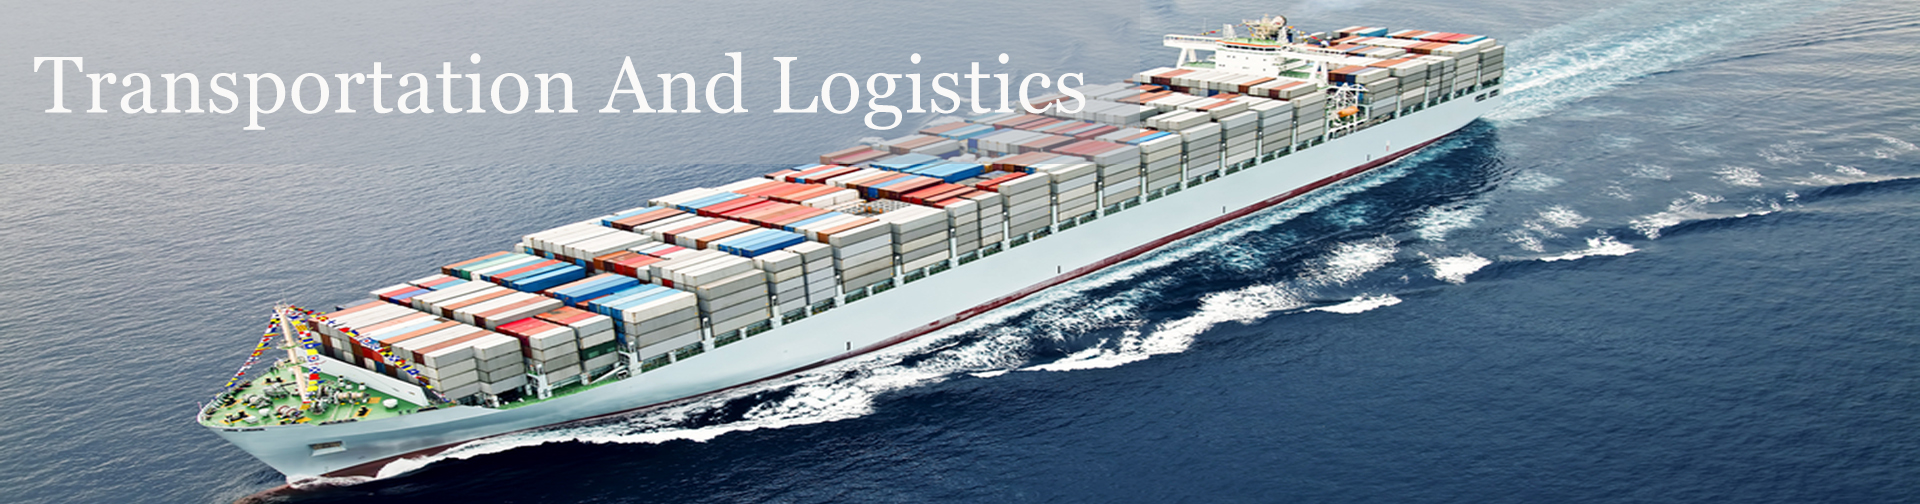 CRM Software for Logistics and Transportation - T3 CRM ERP